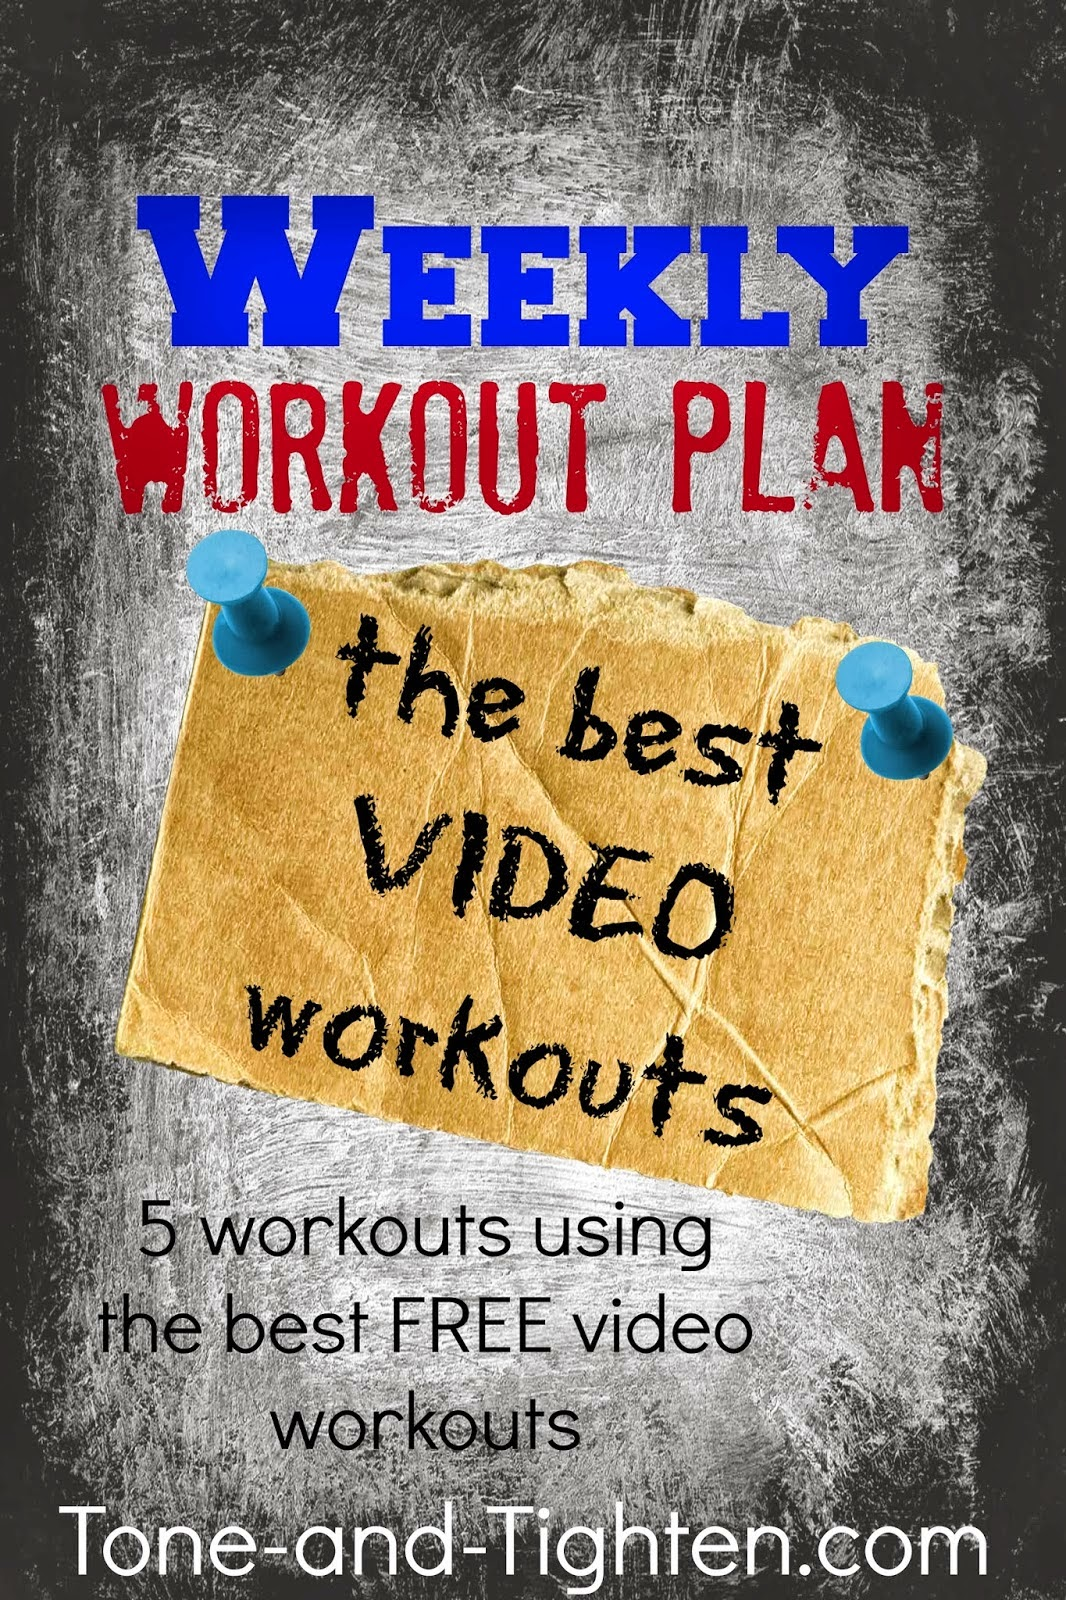 http://tone-and-tighten.com/2014/01/weekly-workout-plan-the-best-video-workouts.html